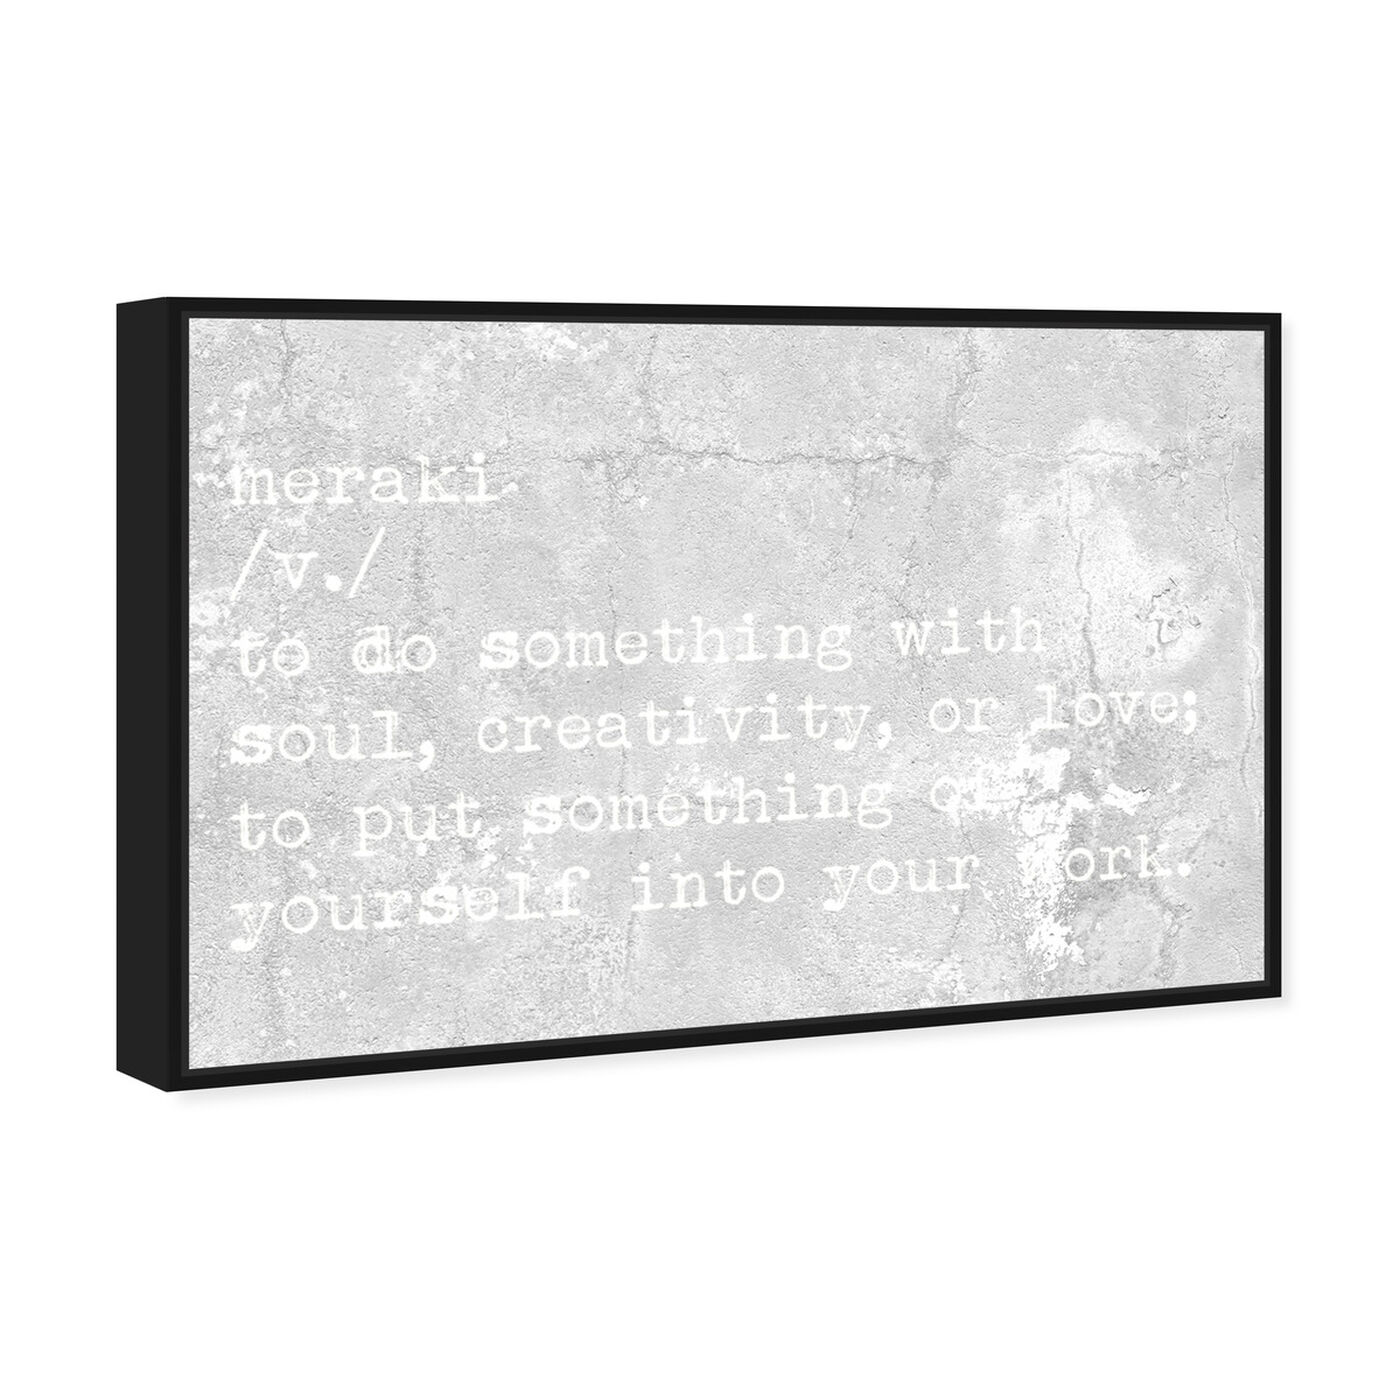 Angled view of Meraki featuring typography and quotes and motivational quotes and sayings art.